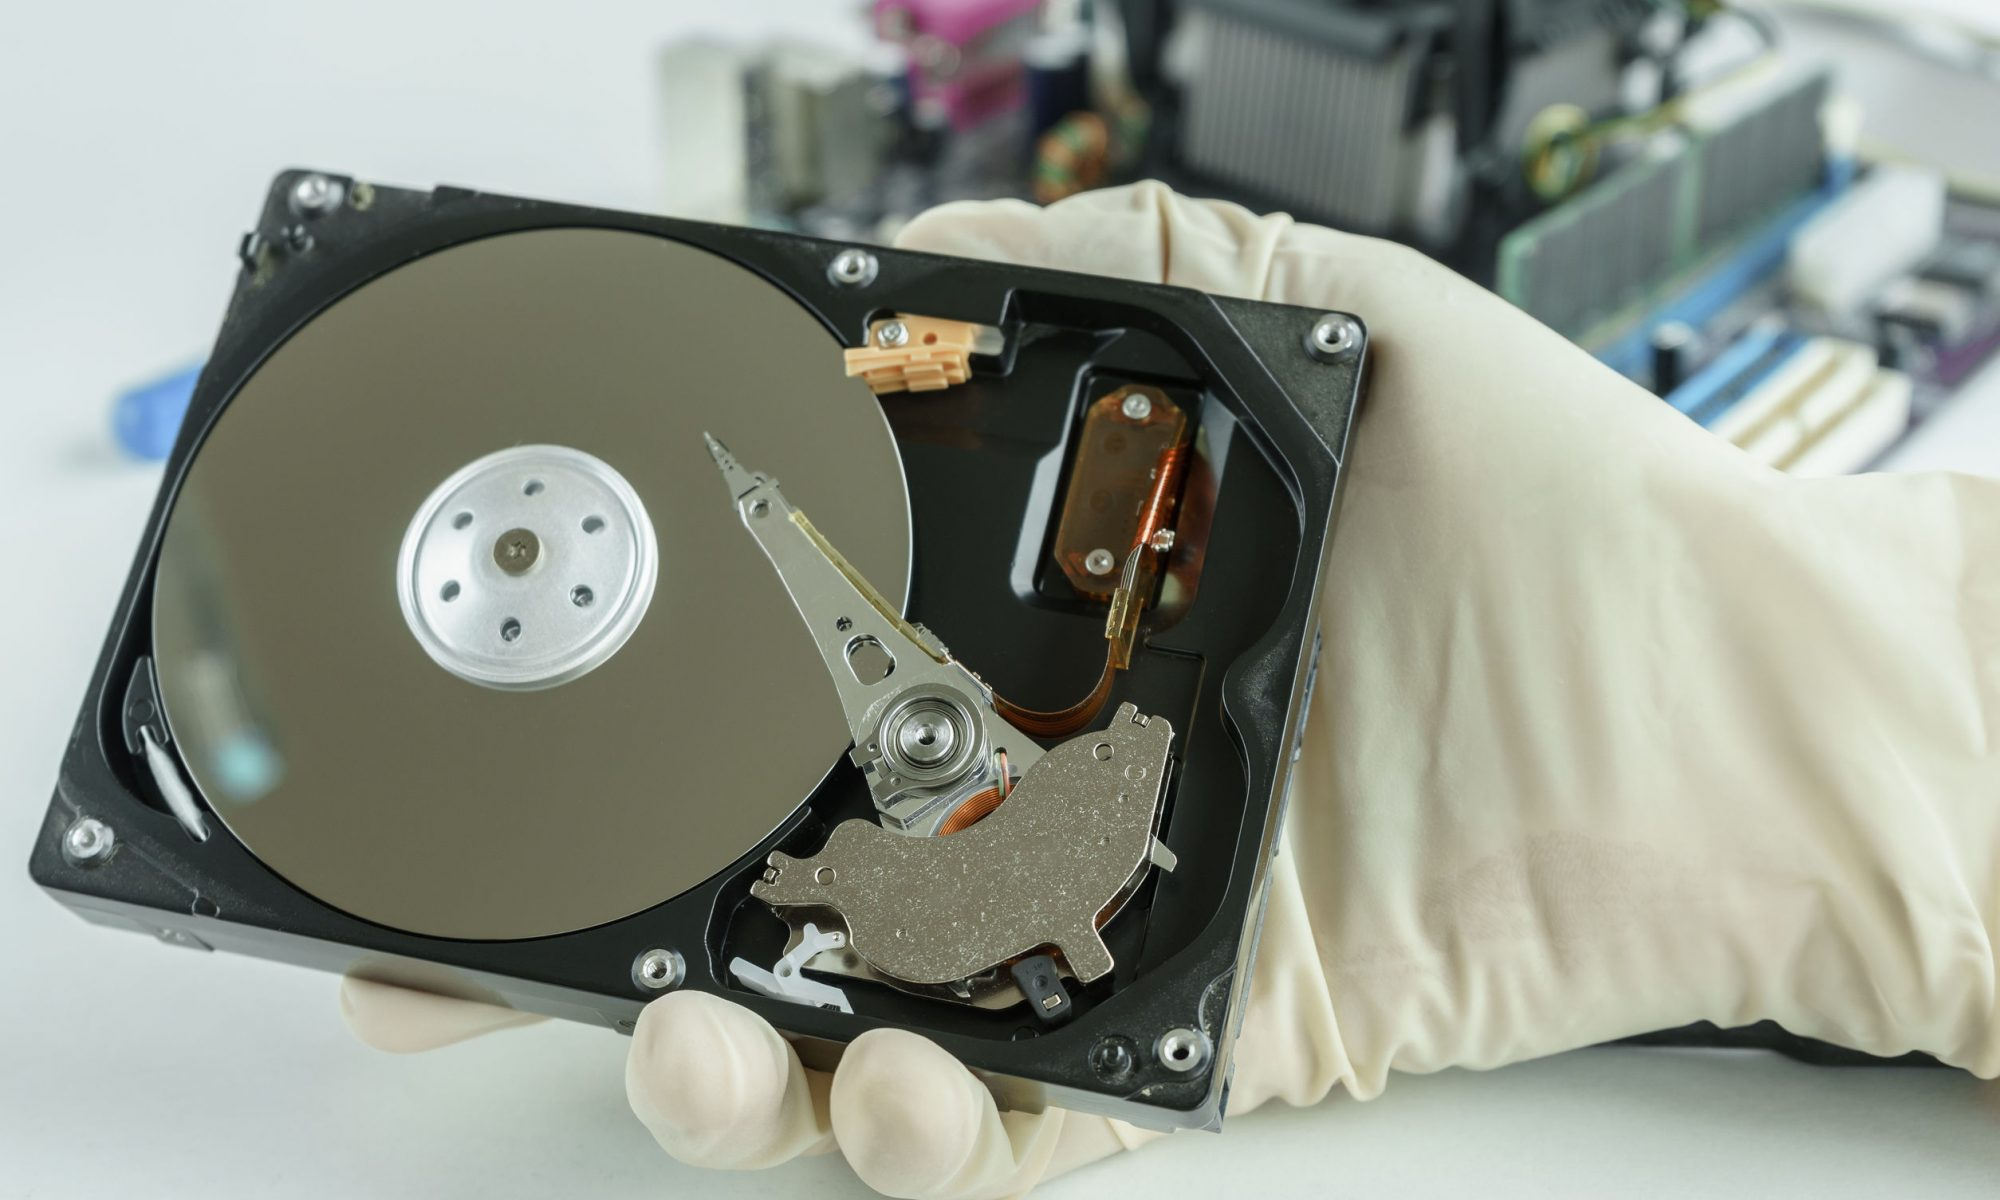 Affordable Data Recovery for Hard Drives & RAIDs